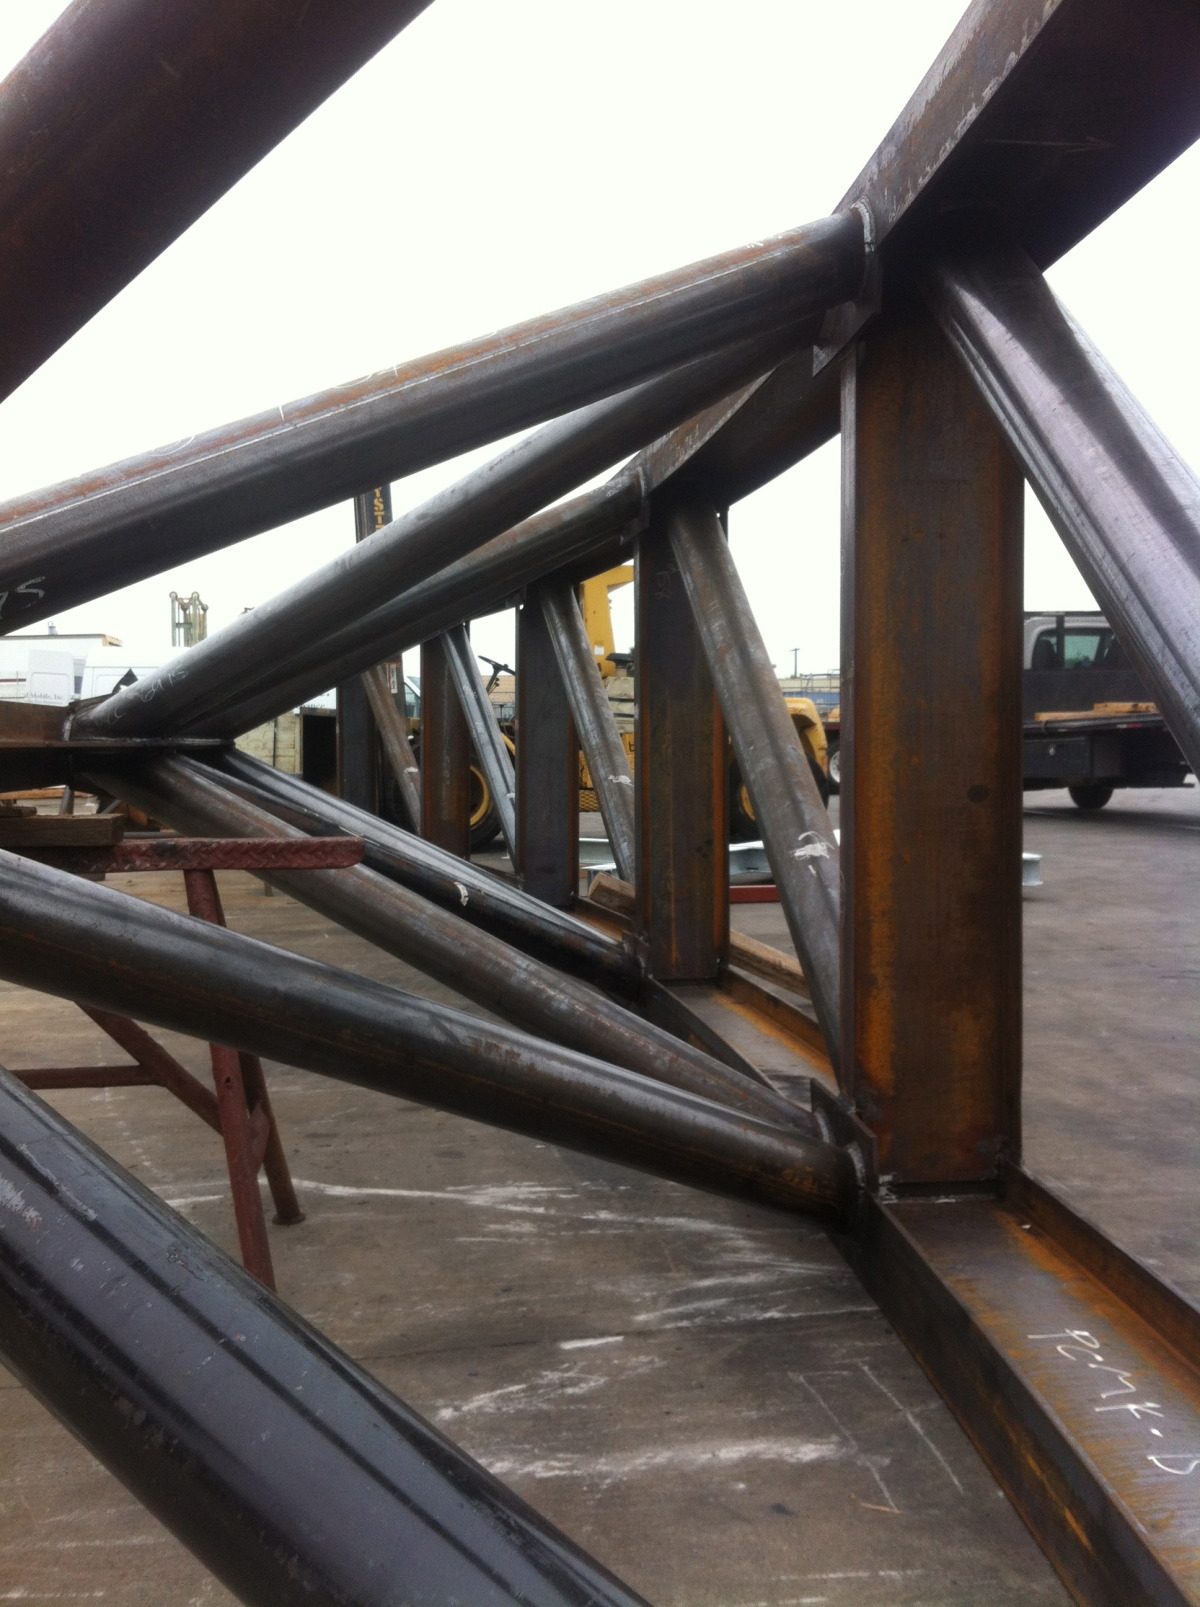 There are fourteen steel truss sections bolted and welded into place forming the 188 foot span of  Rainbow. The weight of the structural steel alone is over 100,000 pounds. The longest section is 40 feet and weighs over 30,000 pounds. Moving the sections required 10 flat bed trucks. Rainbow's  surface is made of648 aluminum panels covering over 7,760 square feet. The six colors required 163 gallons of paint. The fabrication and installation crew numbered 115 people. Like the movies made on the Sony lot, the creation of  Rainbow required a host of extremely skilled and varied artisans and construction workers.